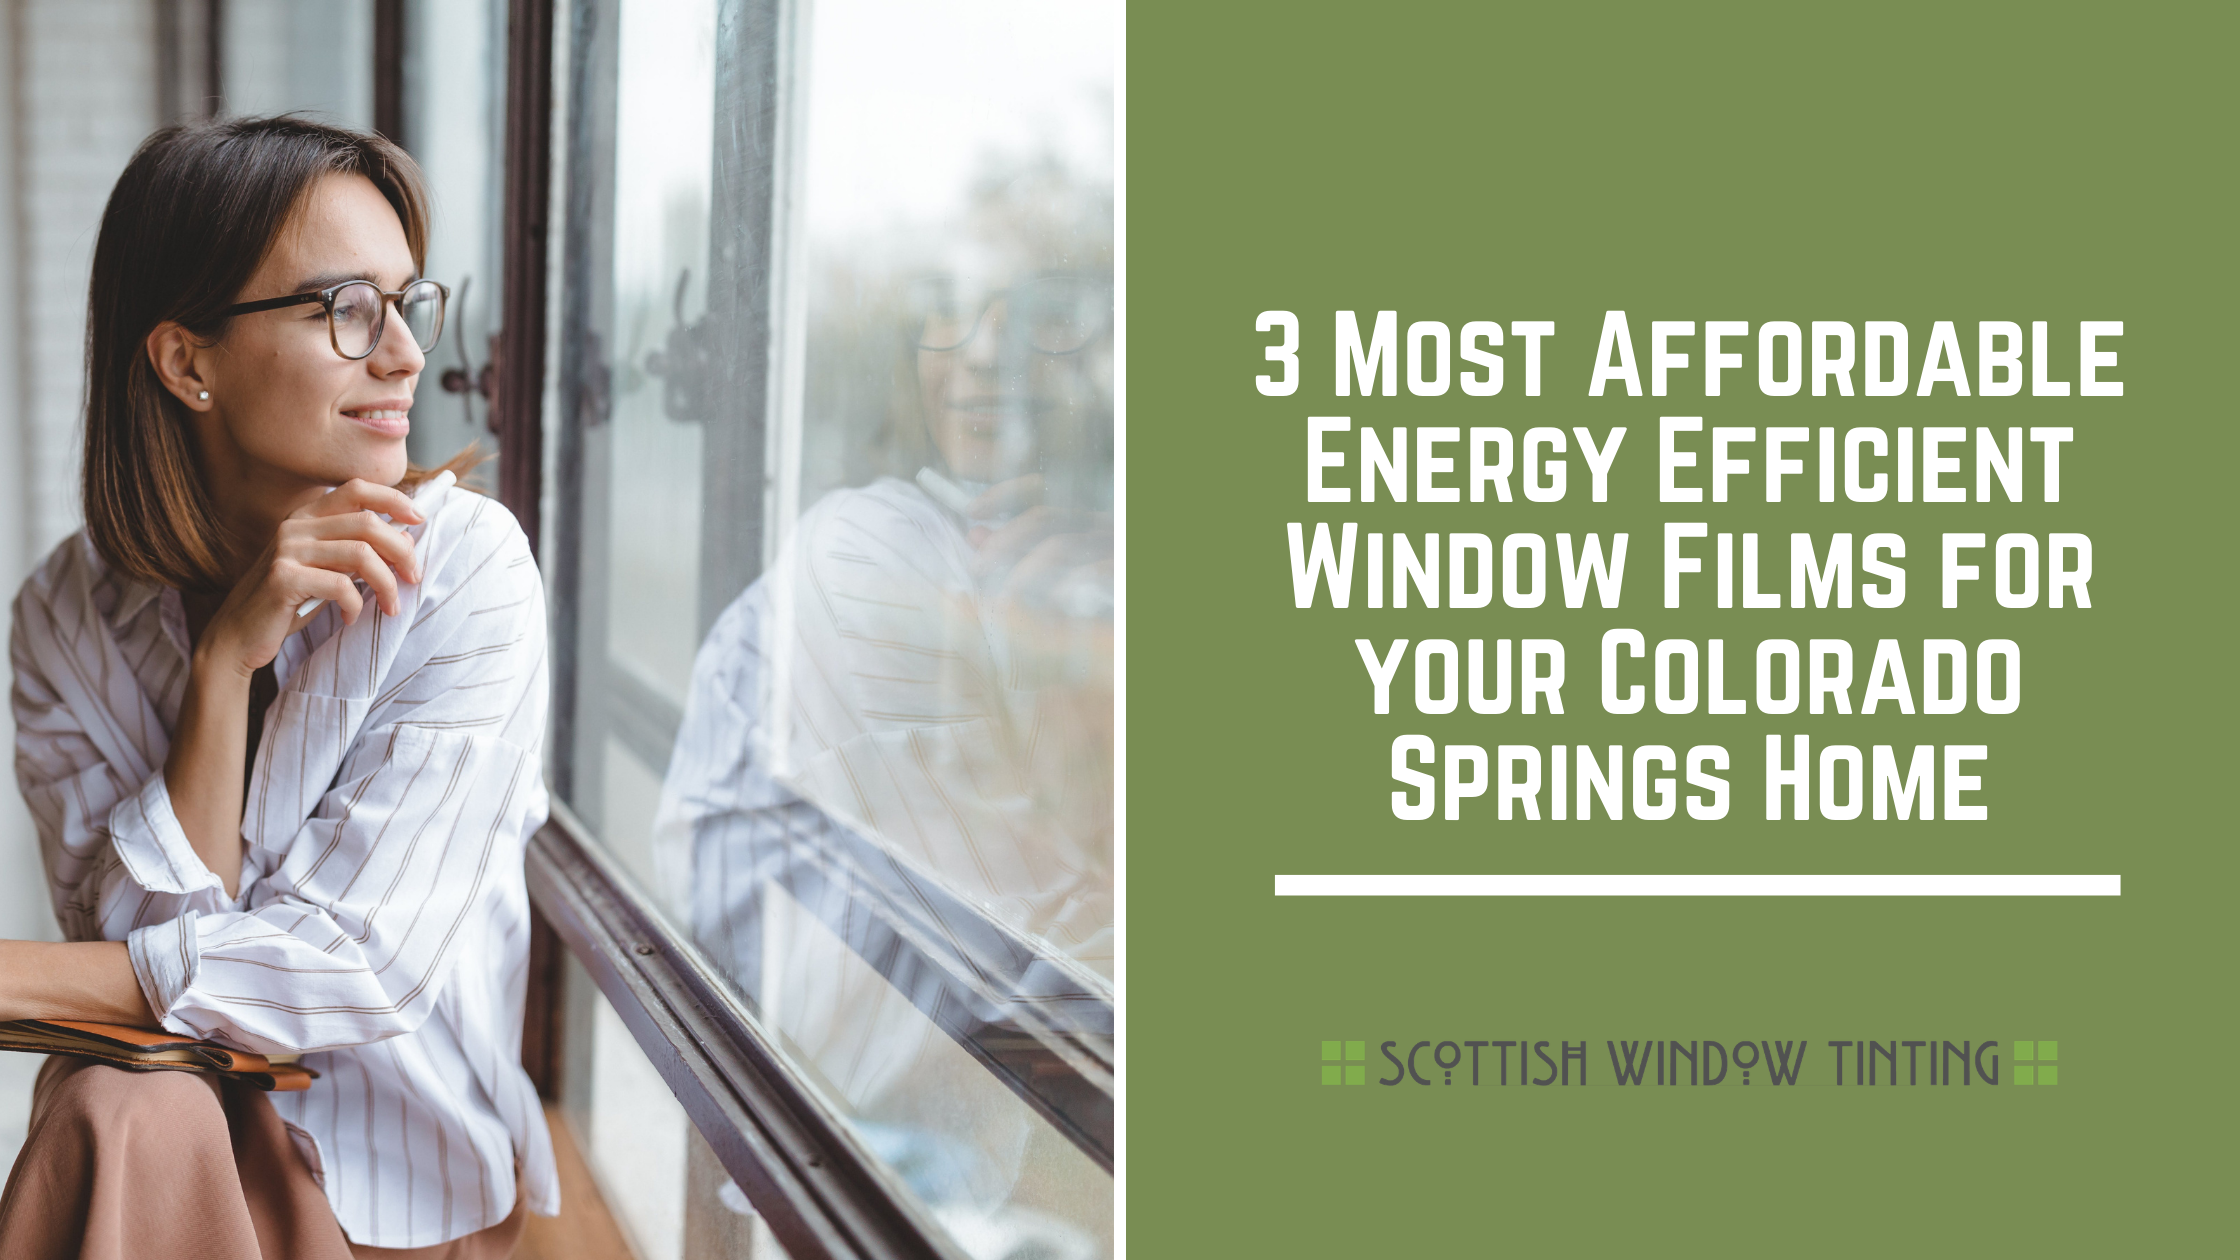 3 Most Affordable Energy Efficient Window Films for your Colorado Springs Home